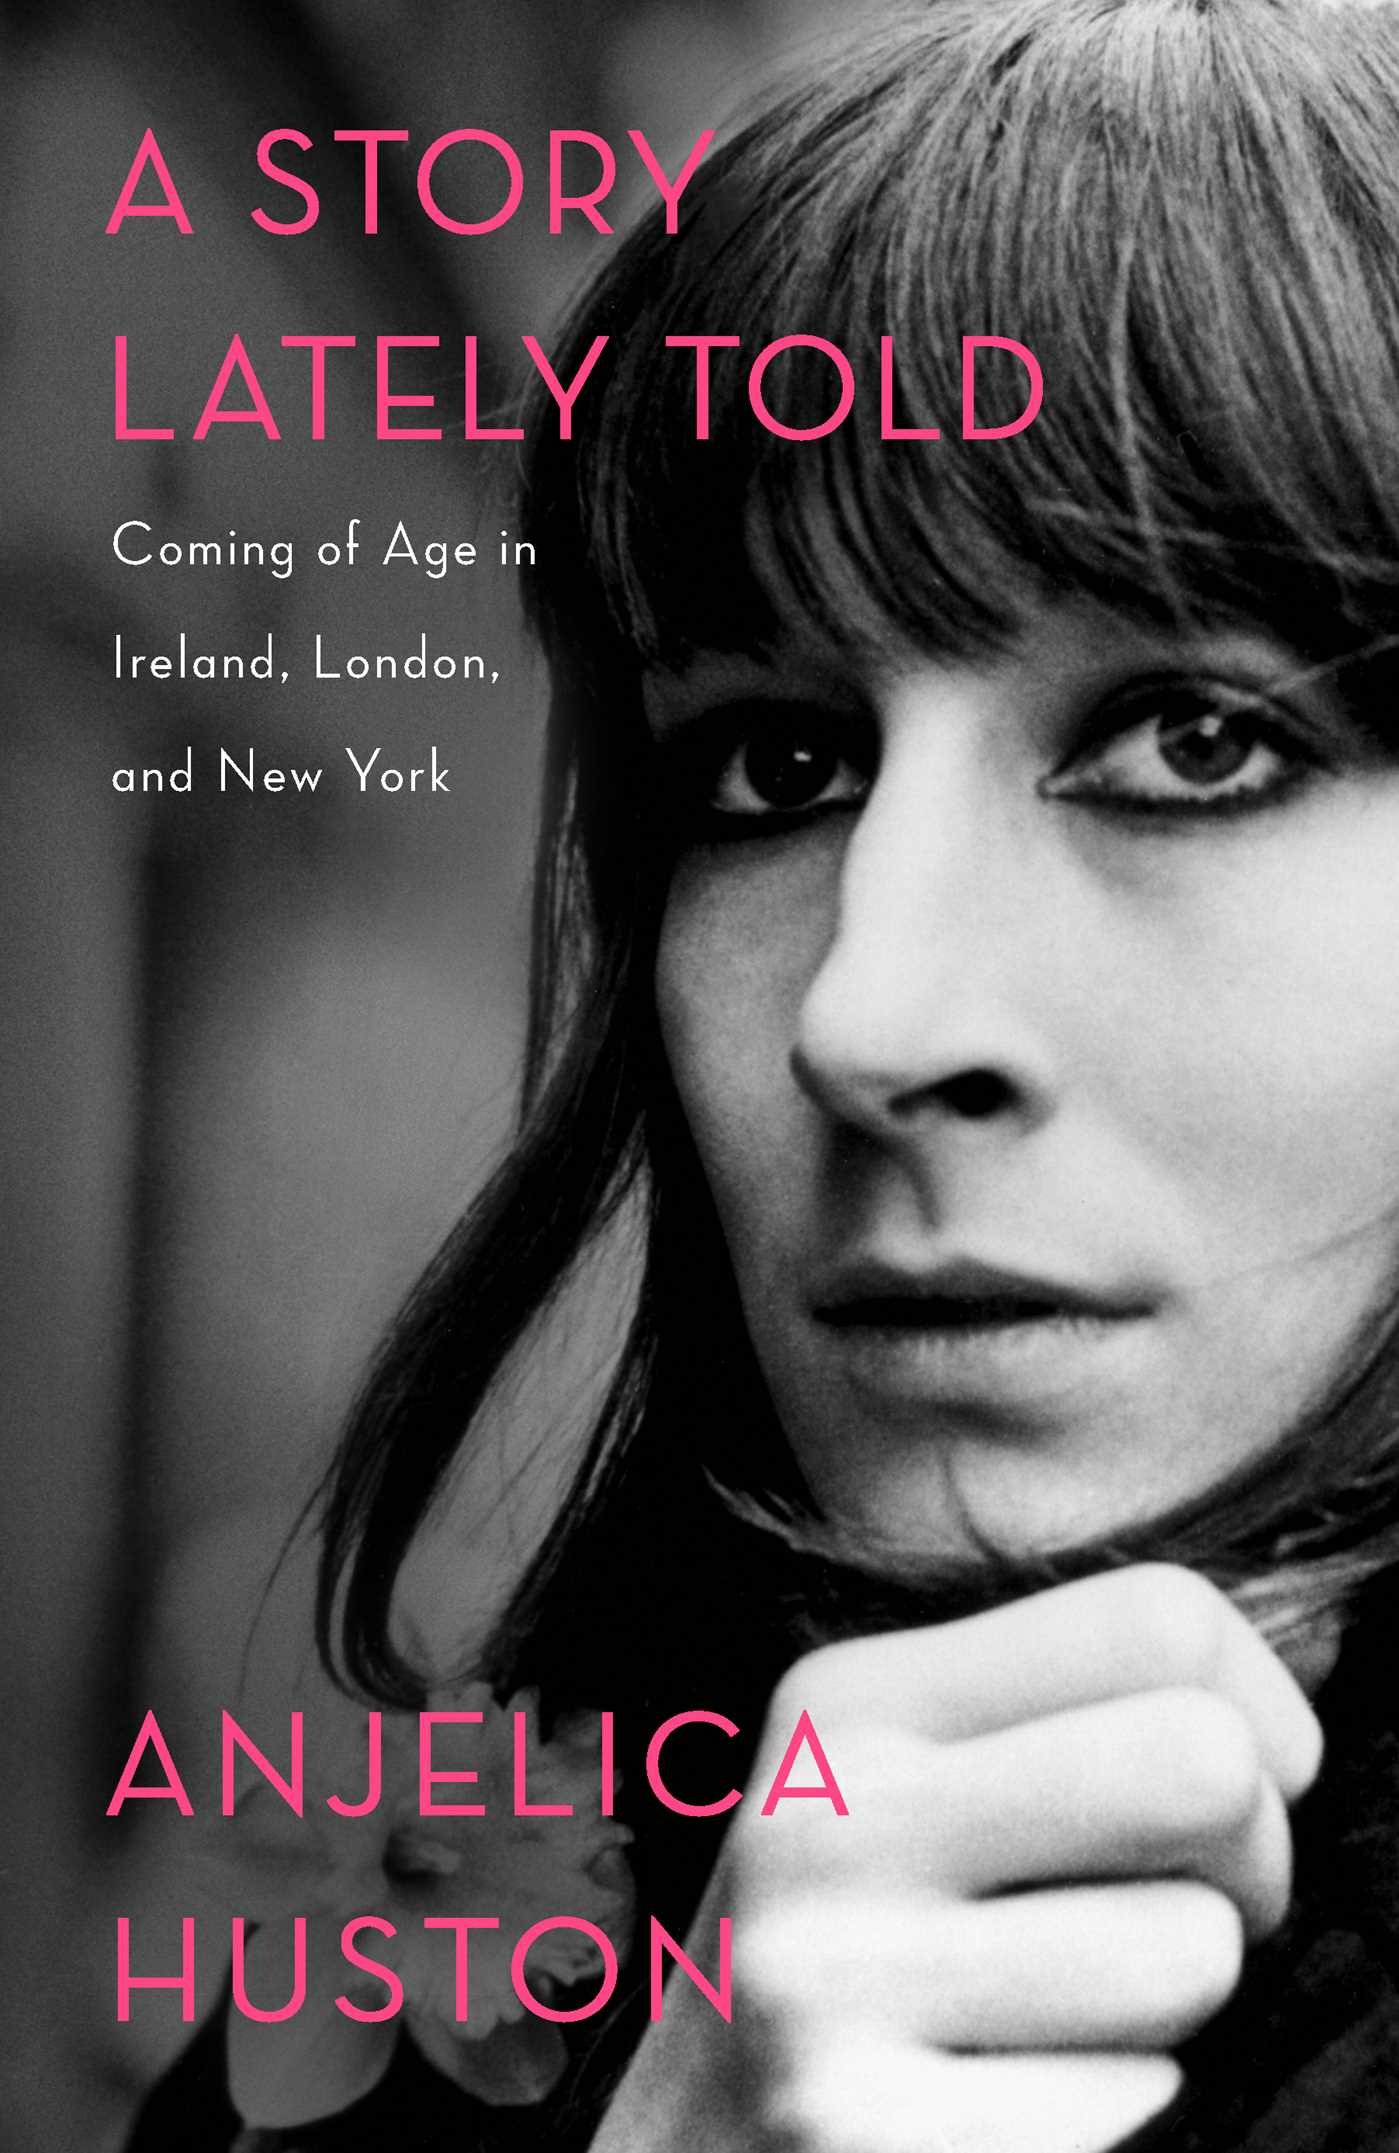 A Story Lately Told: Coming of Age in Ireland, London, and New York ebook